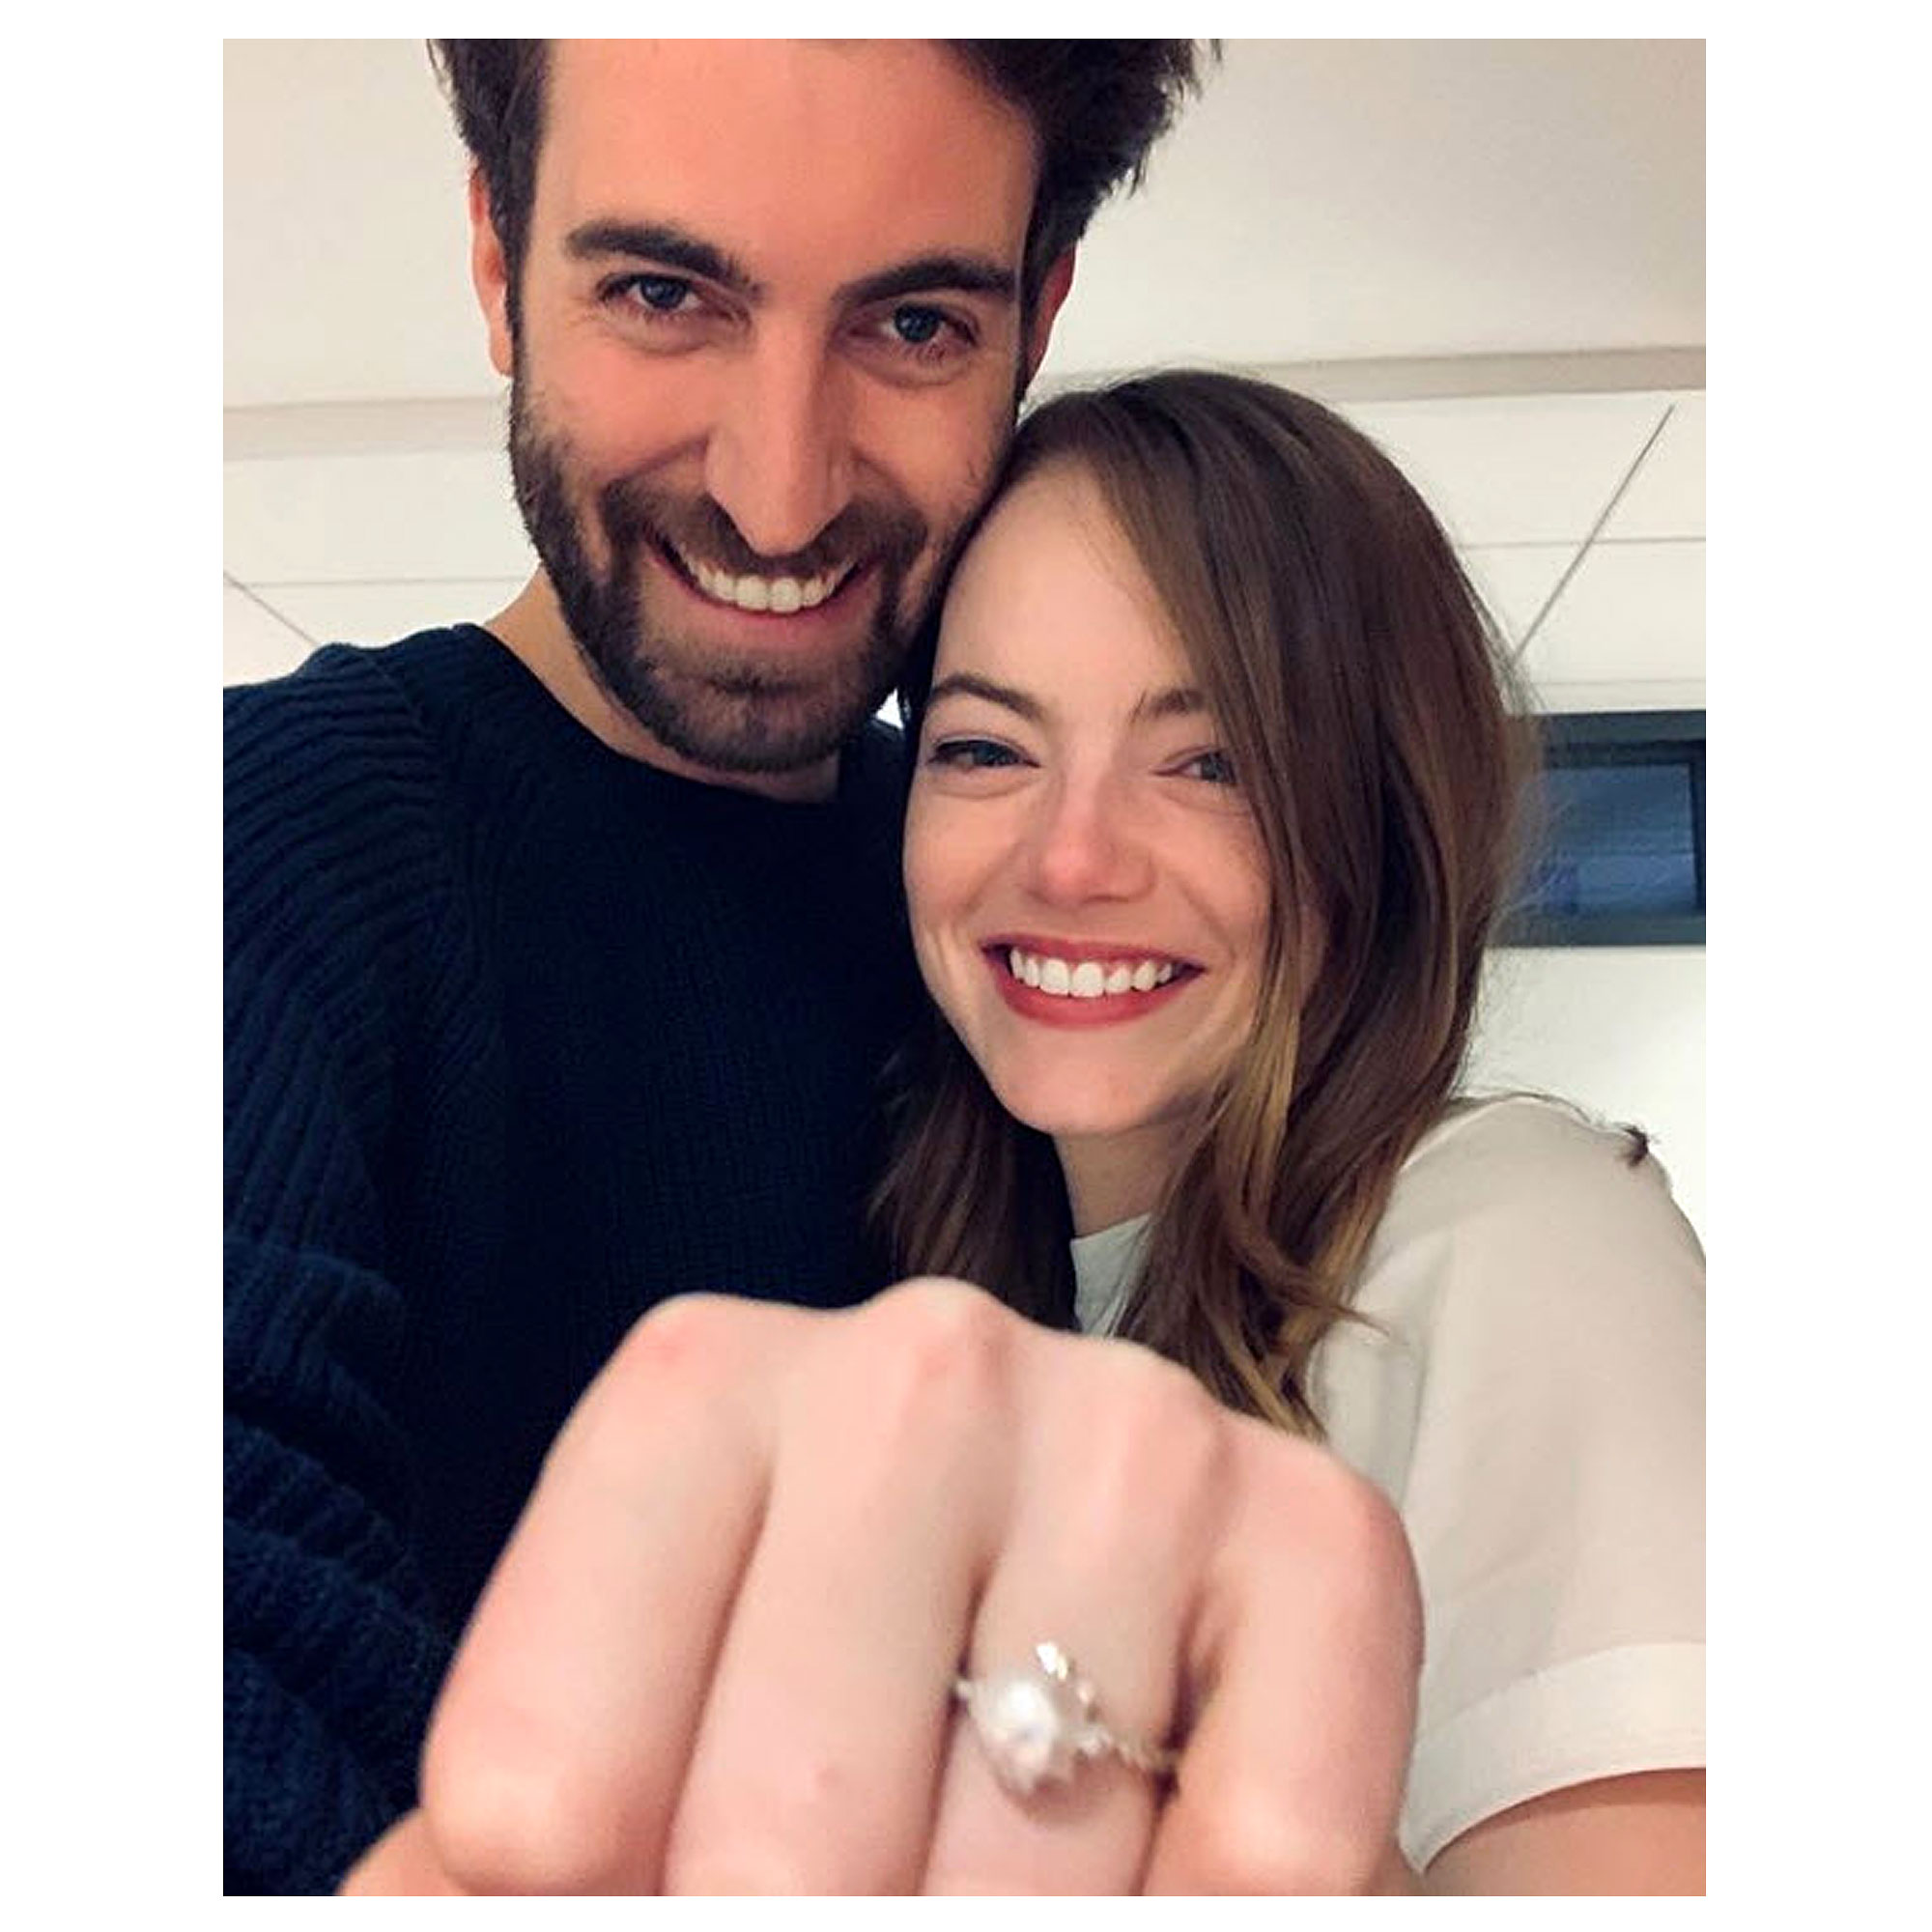 Celebrity Engagements of 2019, Celebrities Who Got Engaged